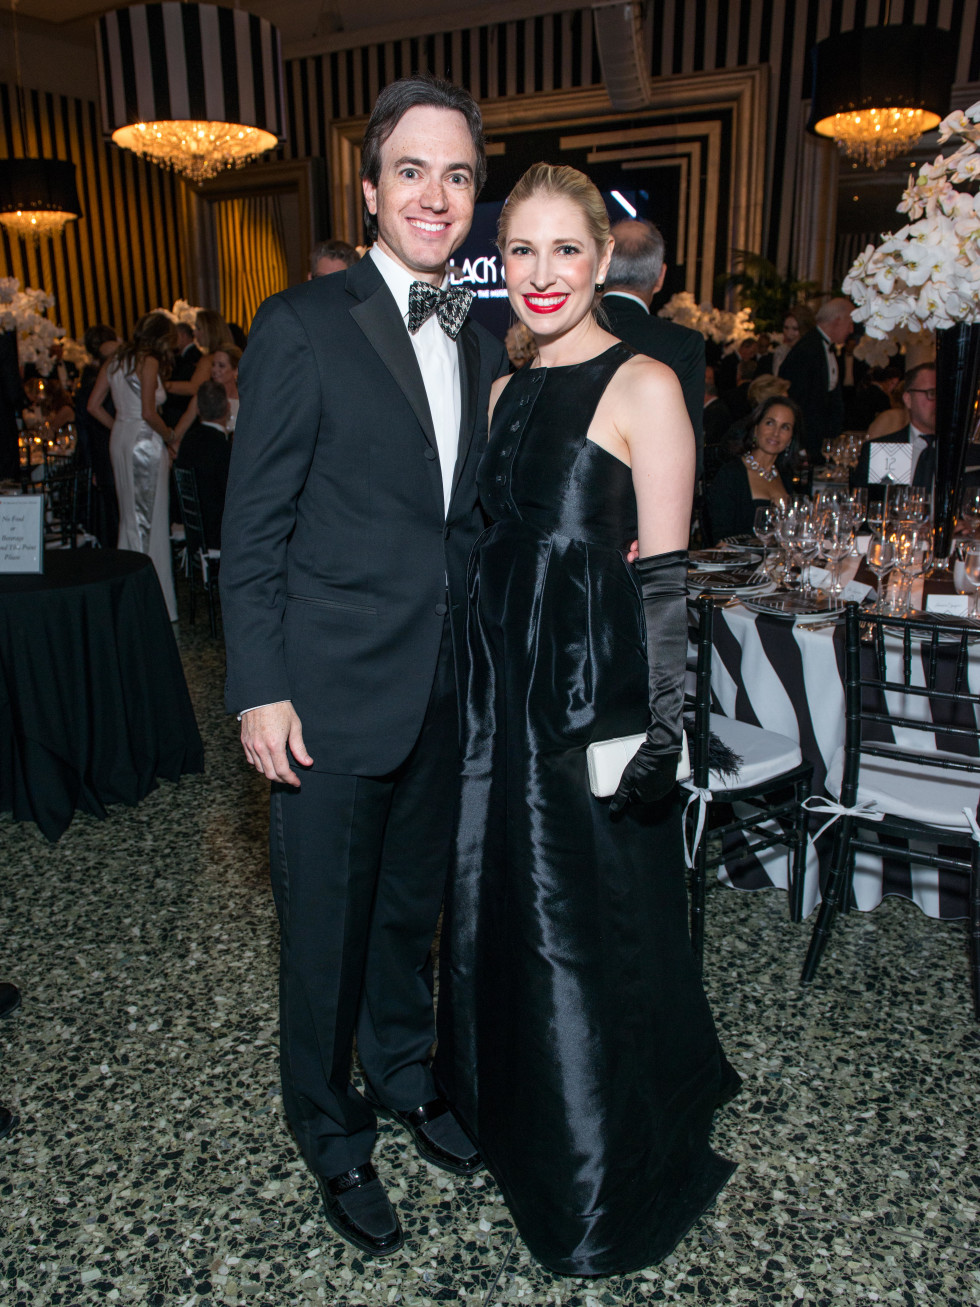 News, Shelby, Museum of Fine Arts gala, Oct. 2015, Danny David, Isabel David